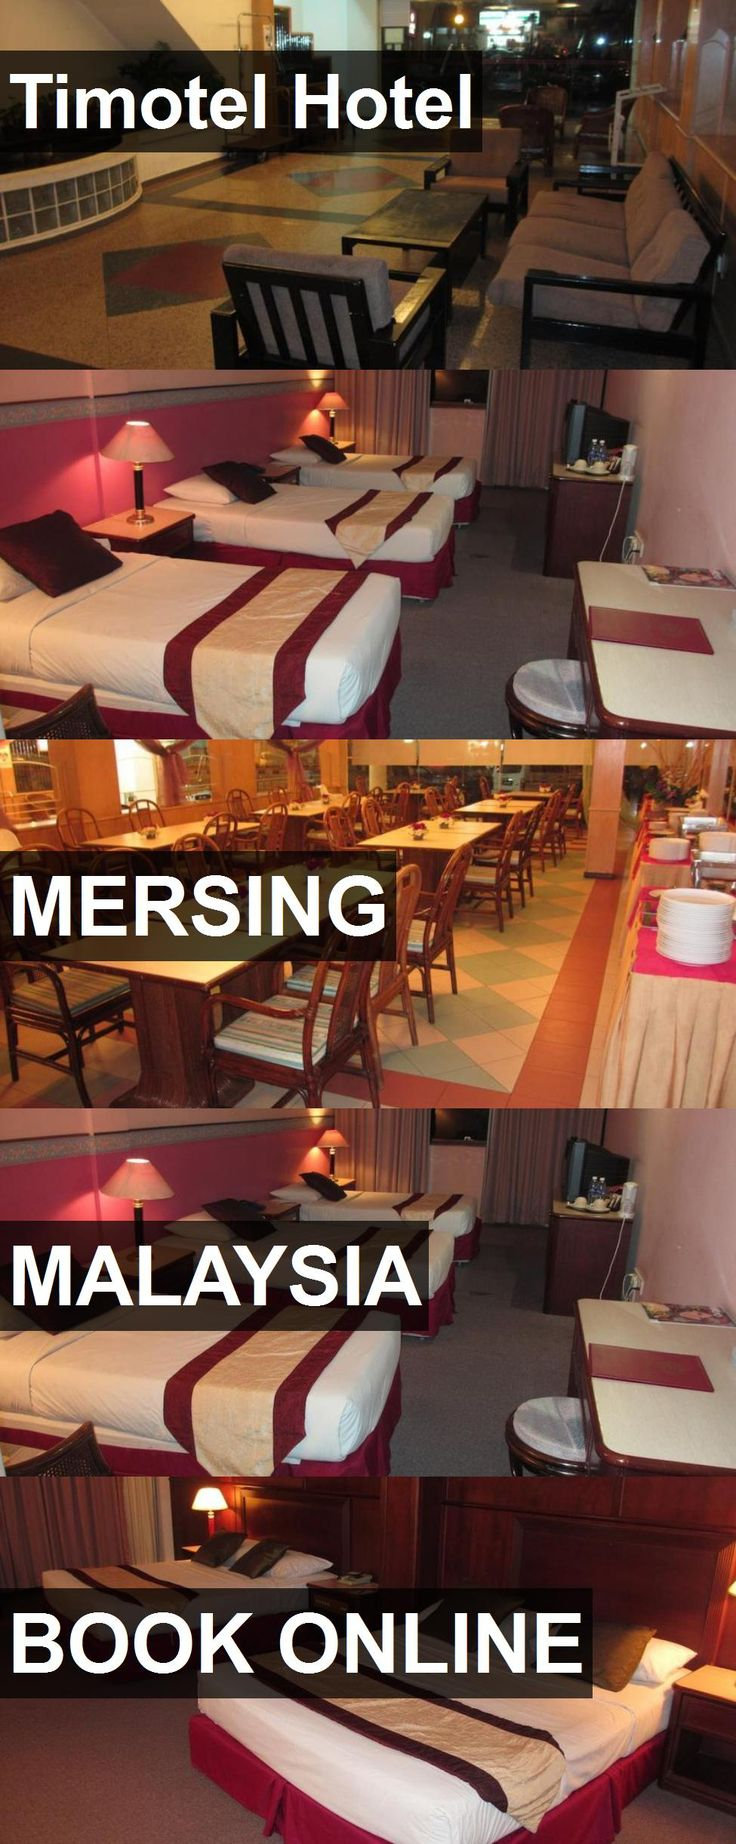 Timotel Hotel in Mersing, Malaysia. For more information, photos, reviews and best prices please follow the link. #Malaysia #Mersing #travel #vacation #hotel